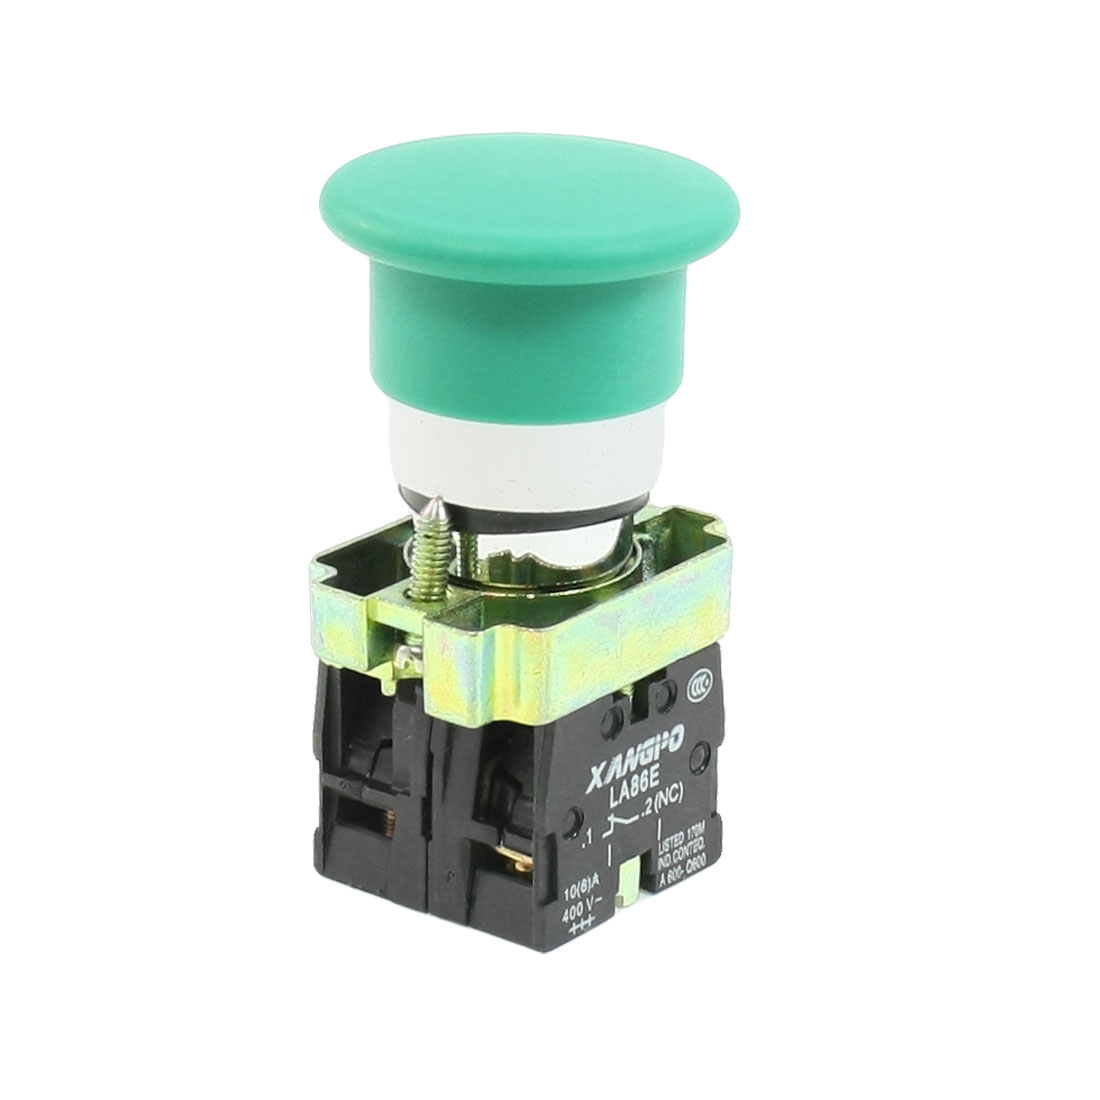 AC660V Ui 10A Ith 1NO 1NC Green Mushroom Head Momentary Push Button Switch